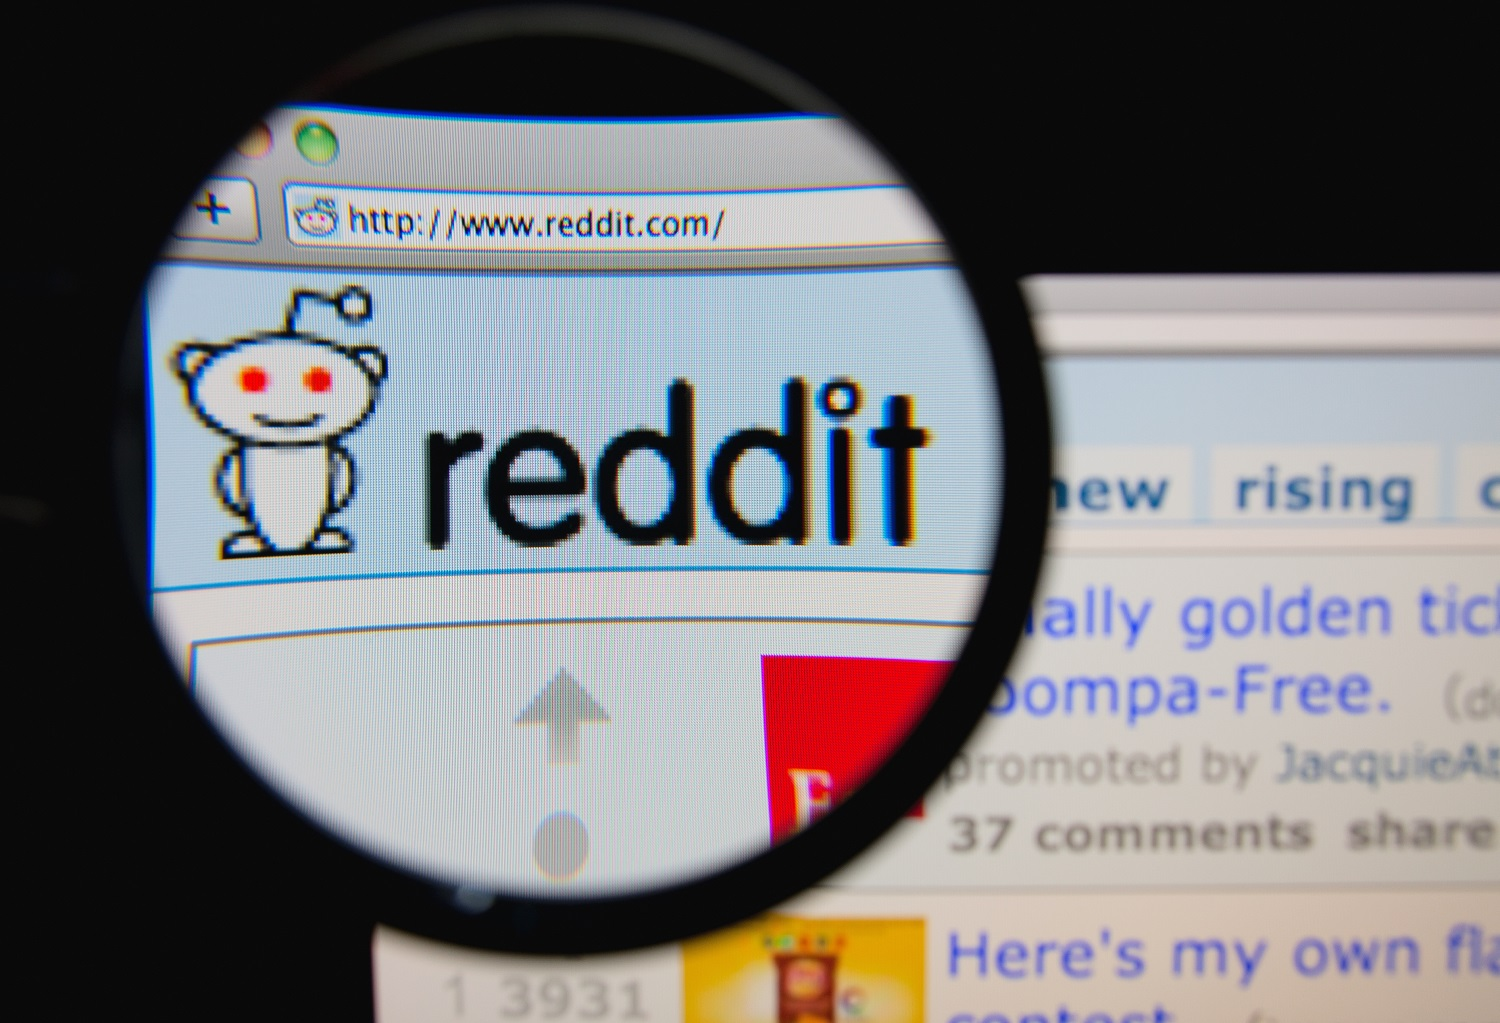 Reddit to the Rescue